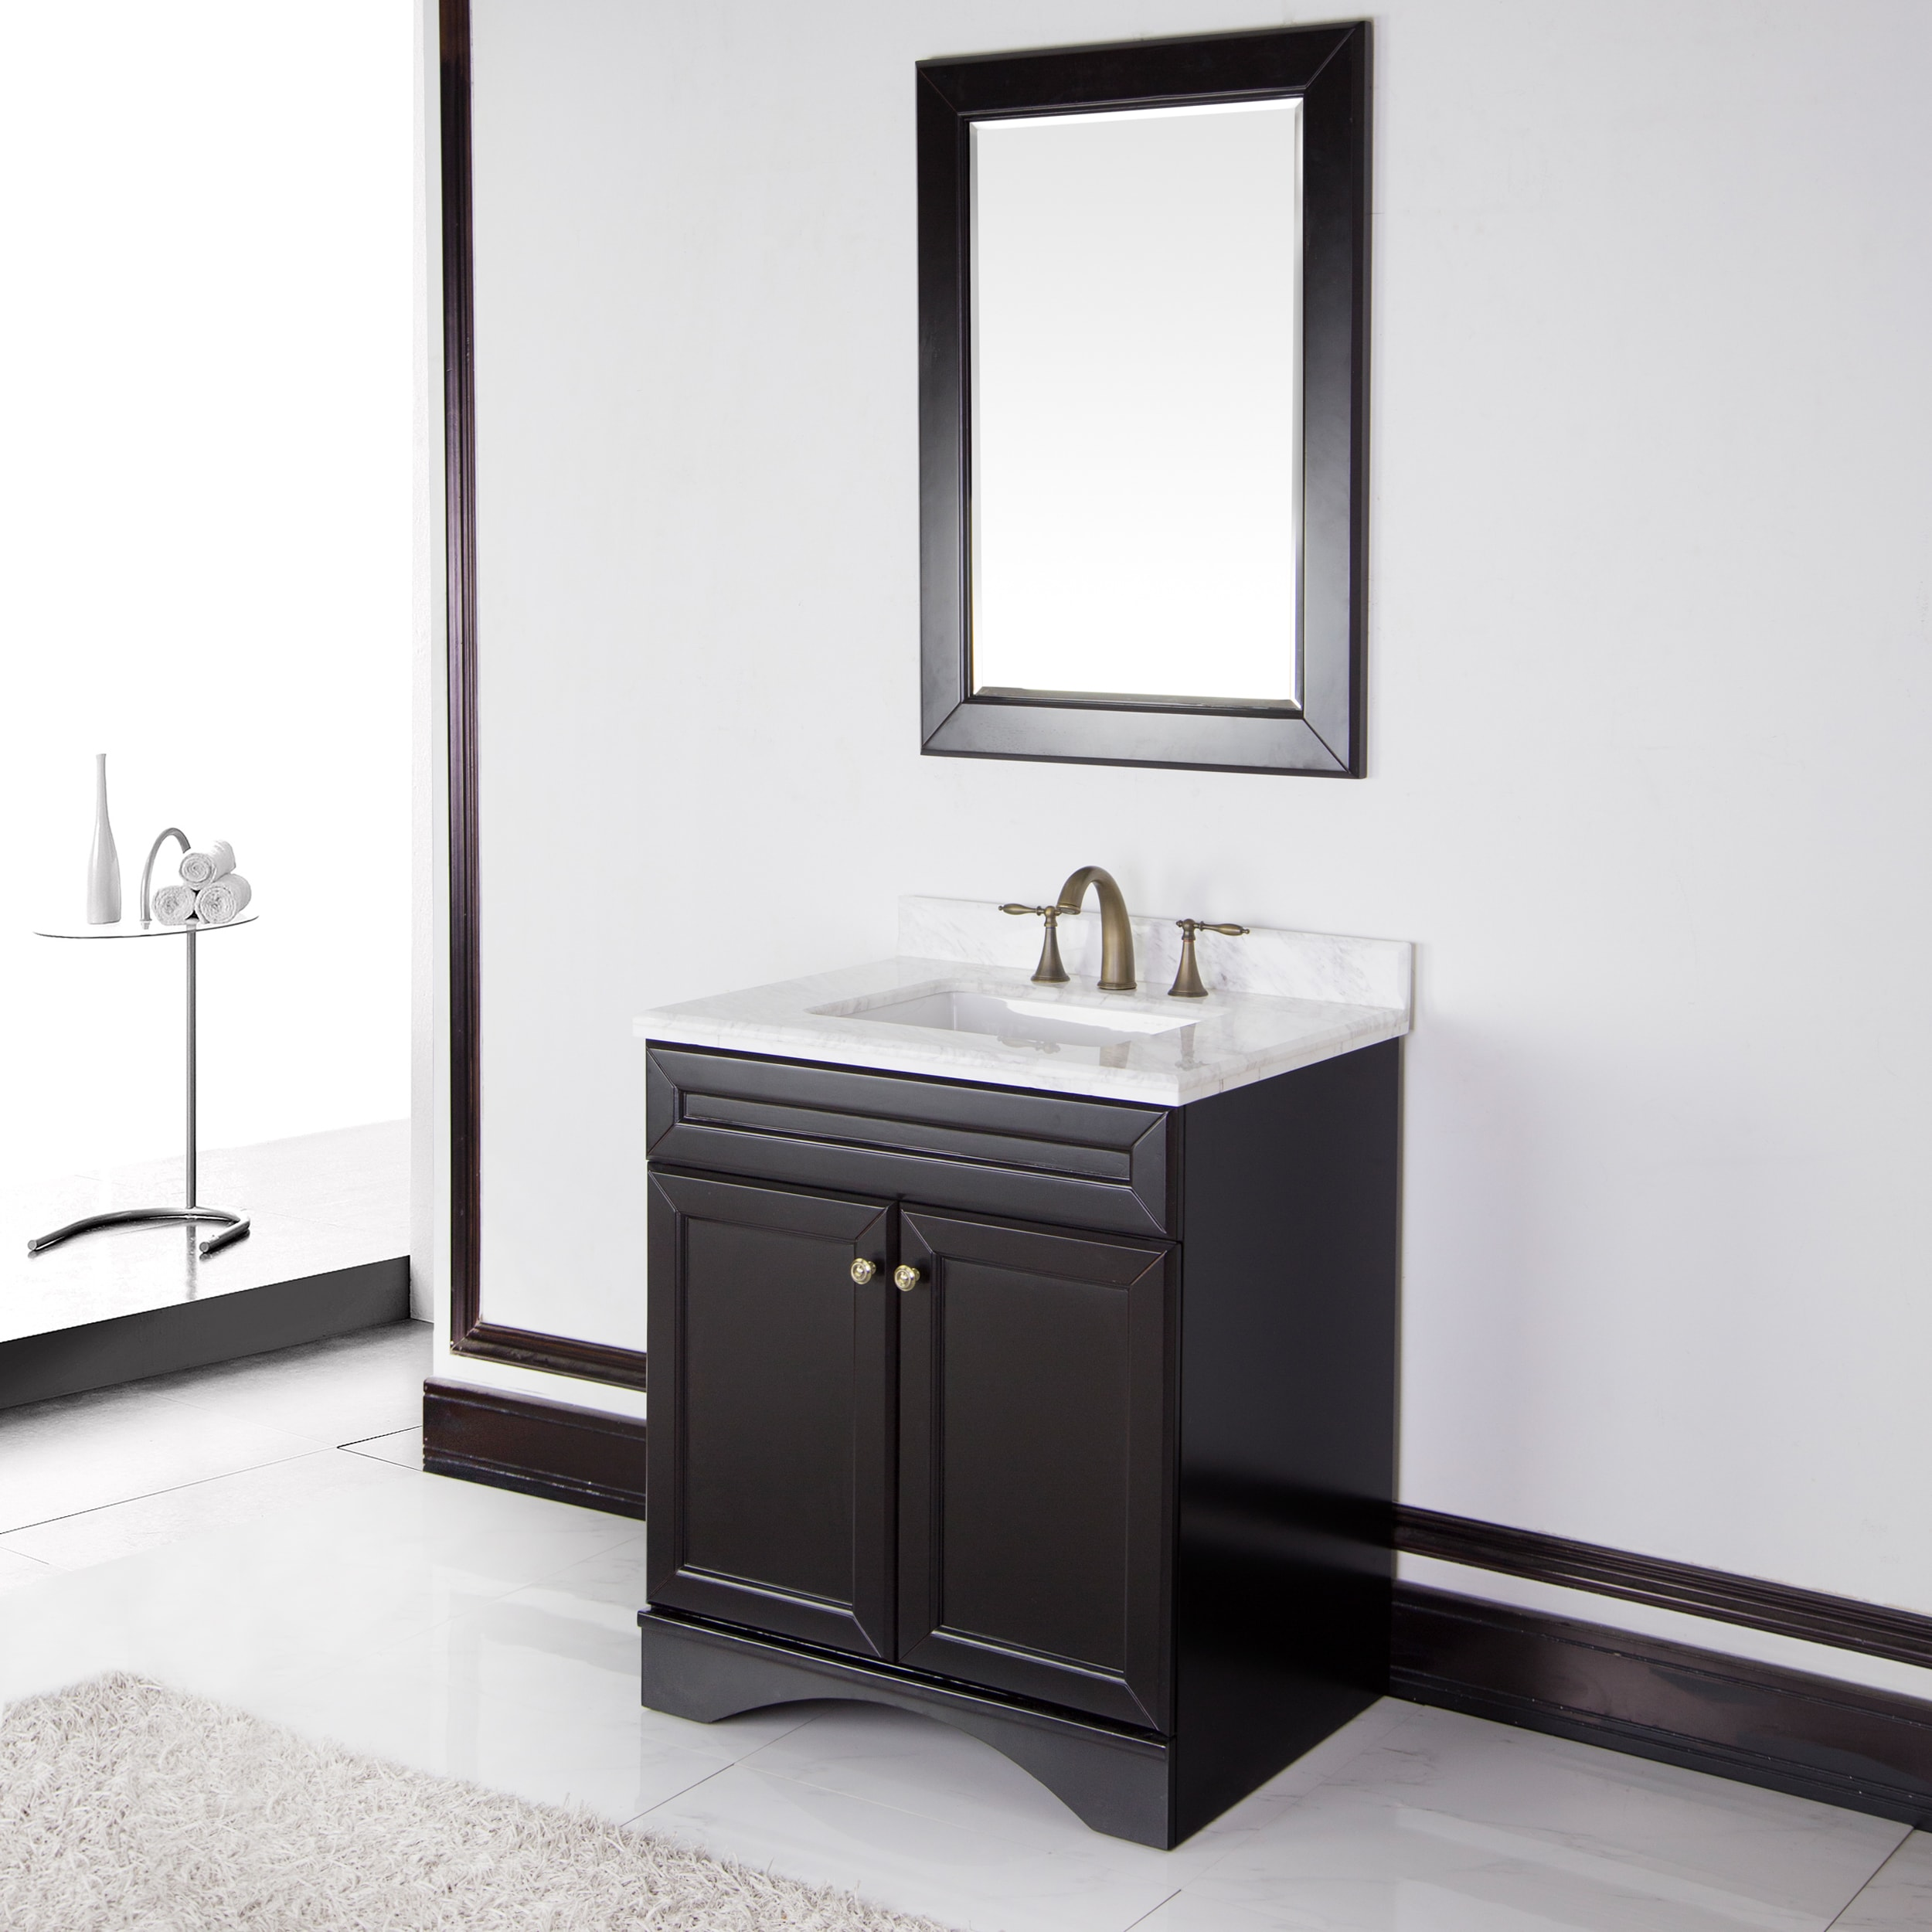 28 Awesome Bathroom Vanities 30 Inch